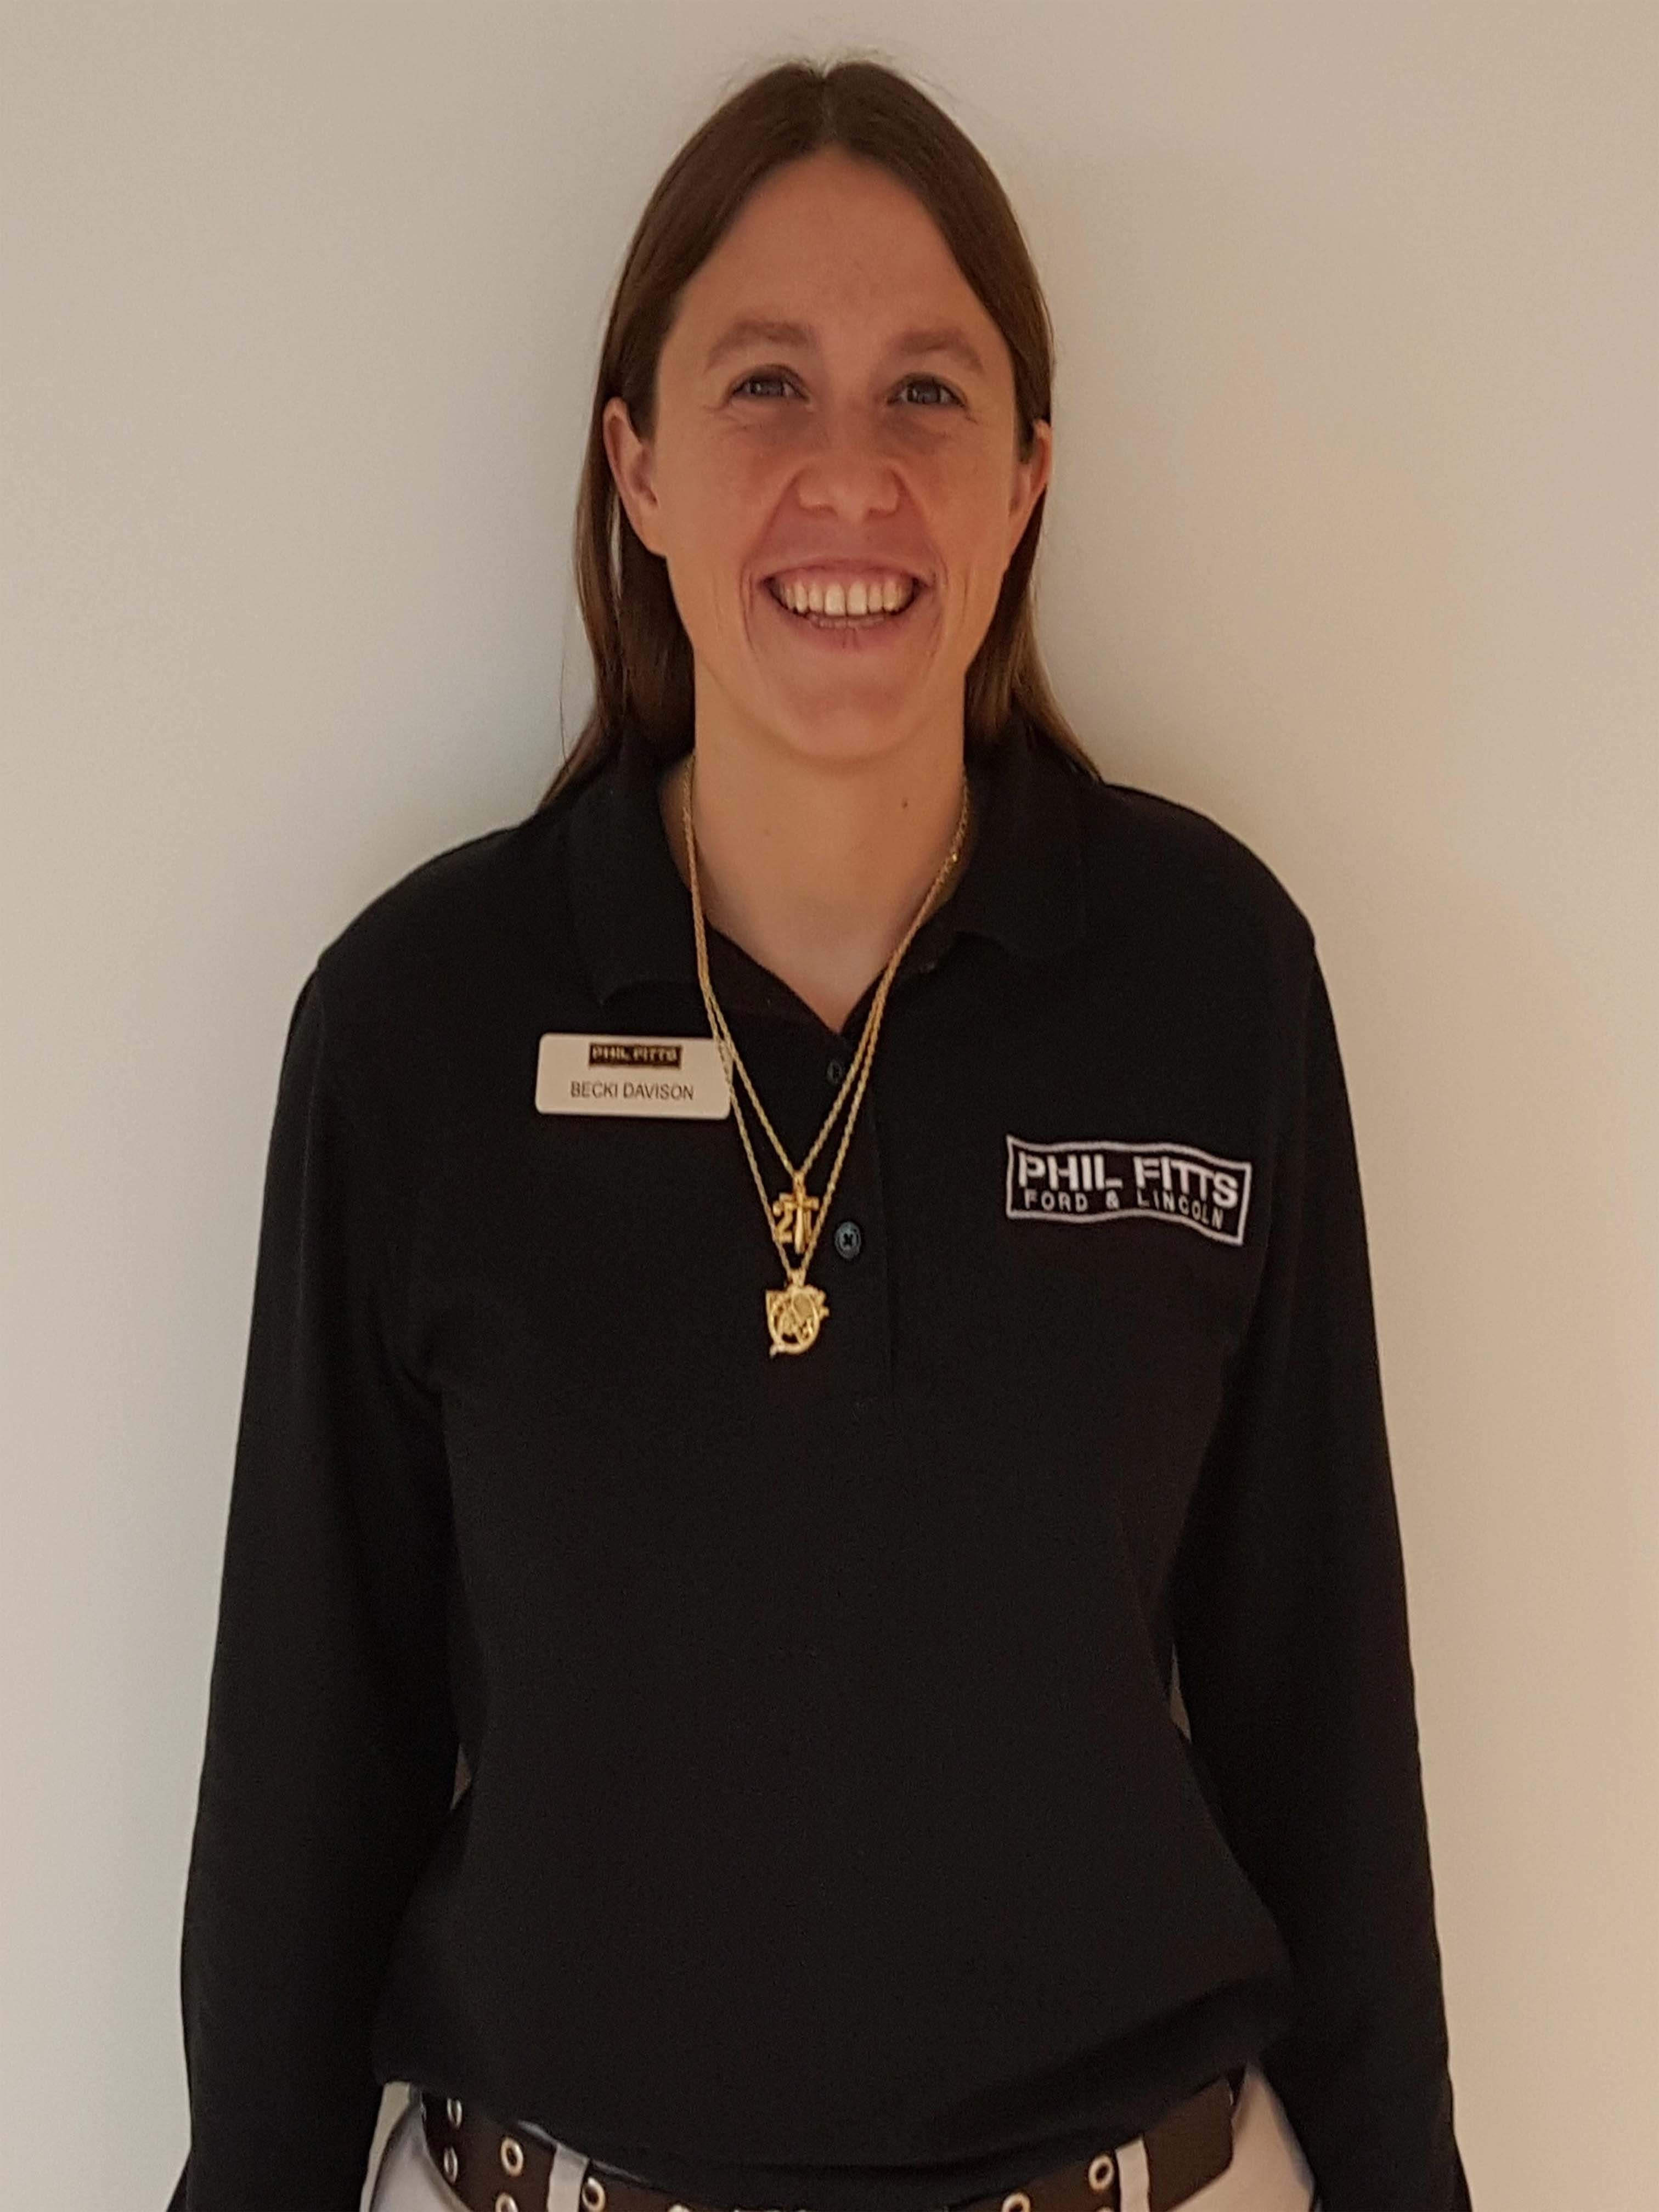 Phil Fitts Ford >> Phil Fitts Ford Staff | Meet Our Ford Team